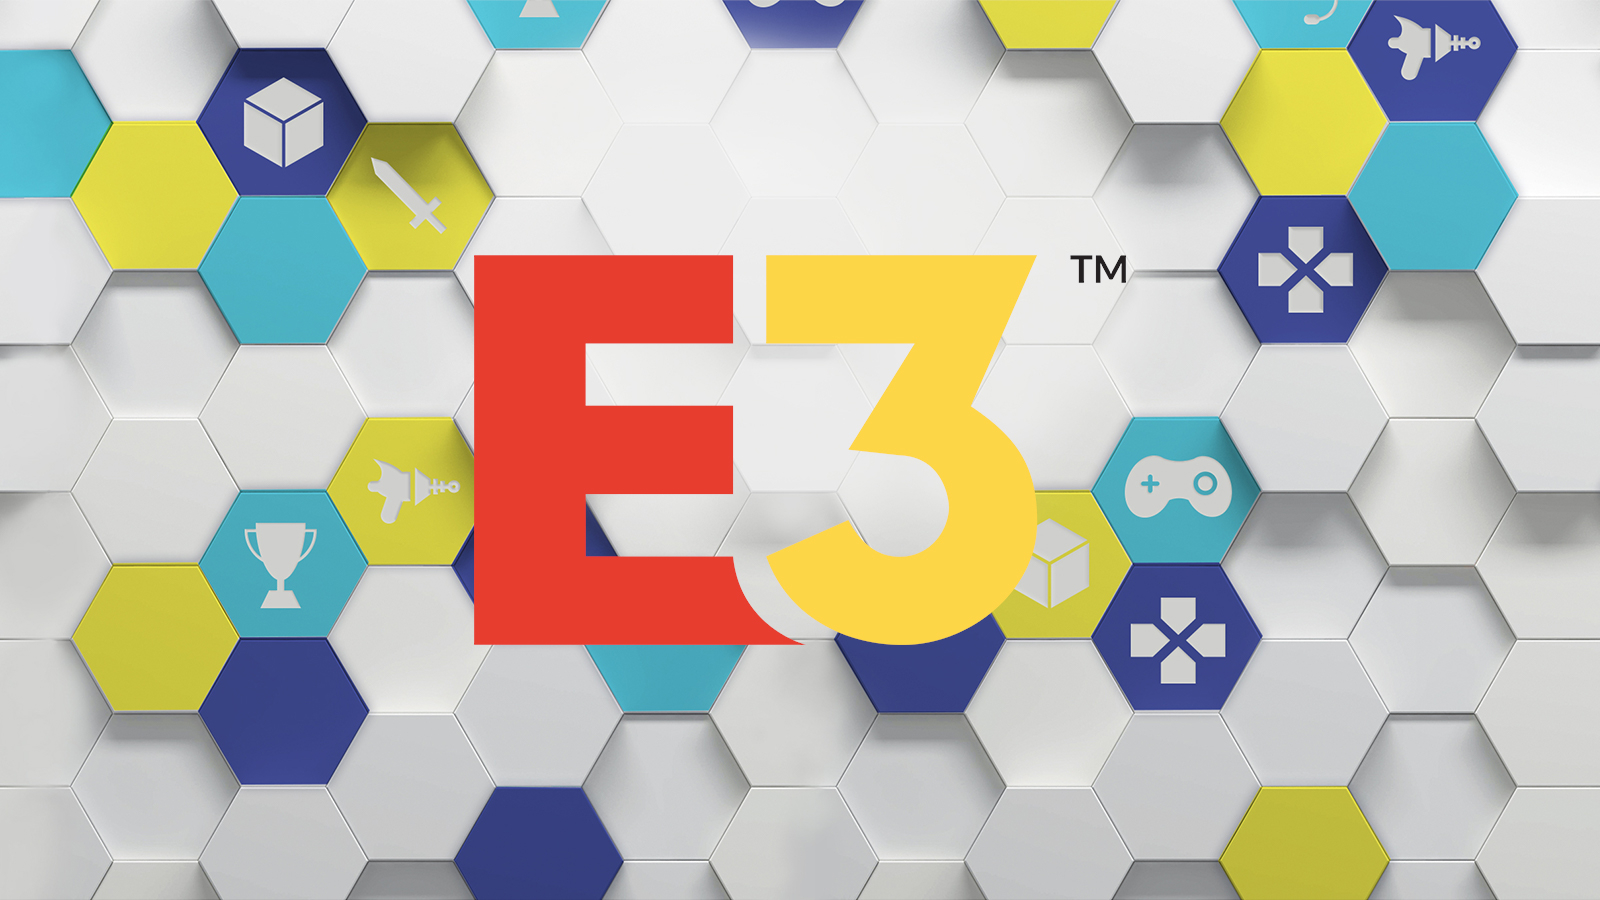 E3 loses its creative director three months before the show screenshot